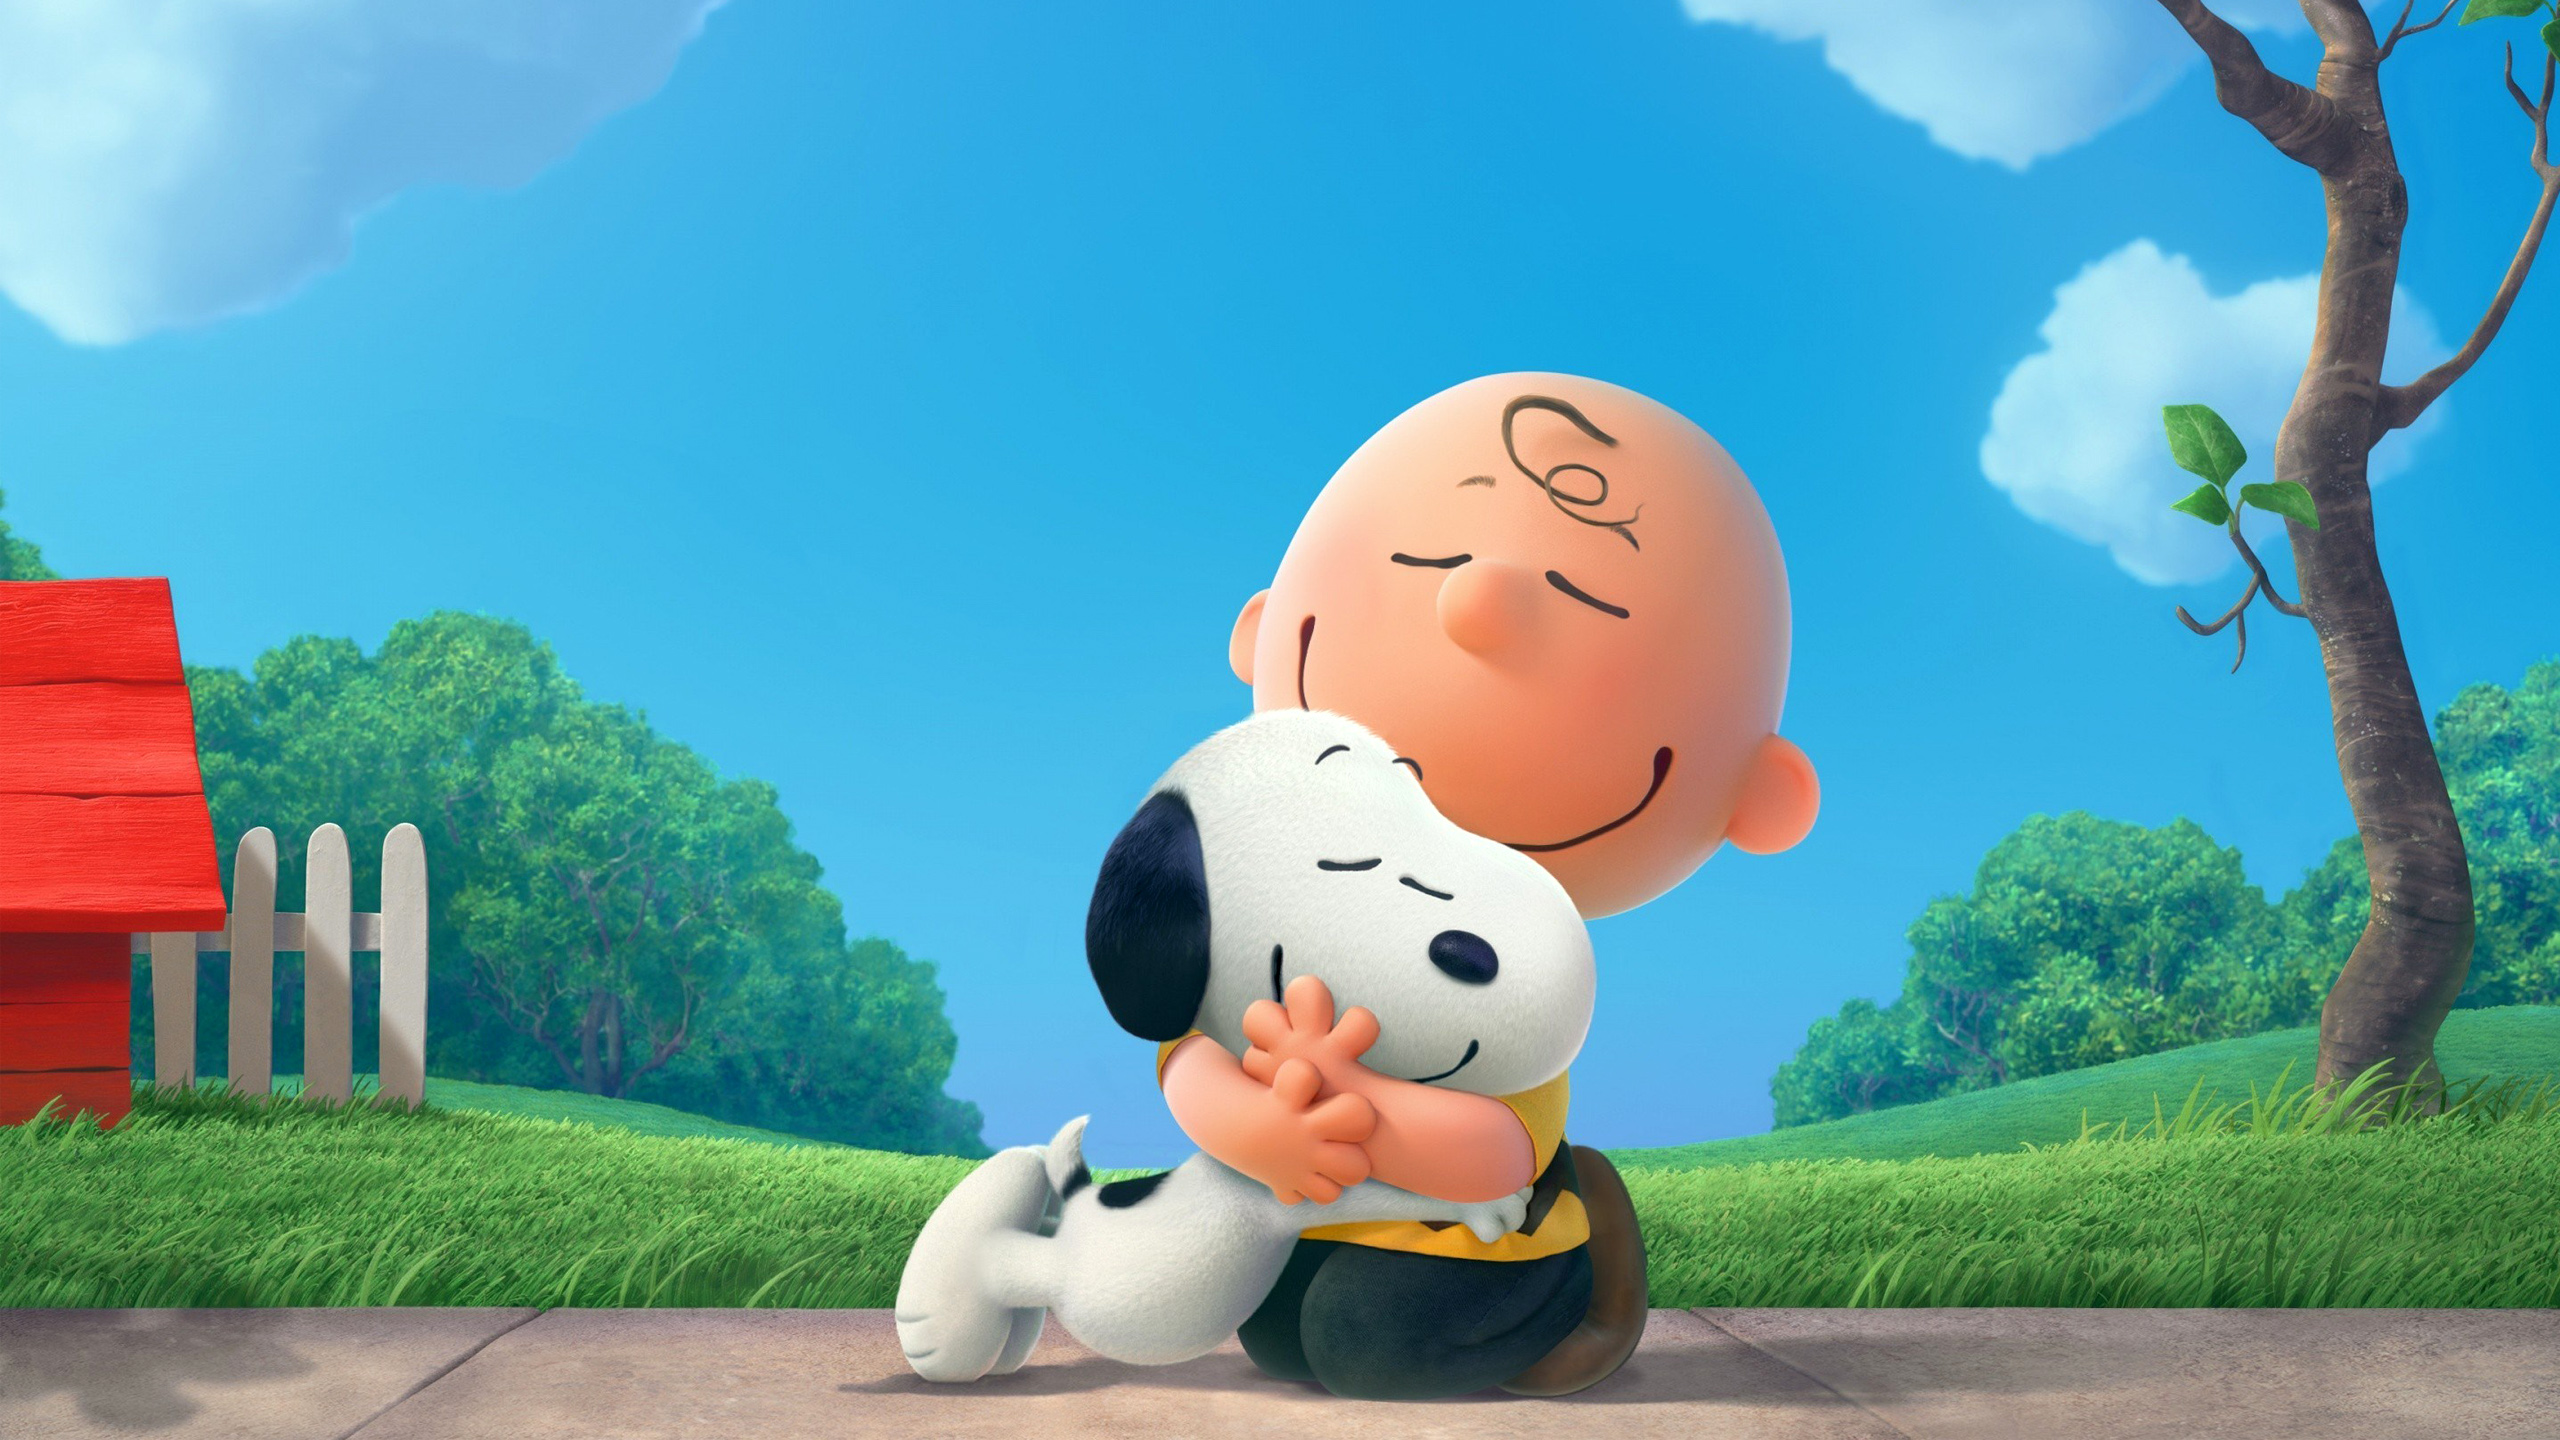 18 Charlie Brown HD Wallpapers | Backgrounds - Wallpaper Abyss